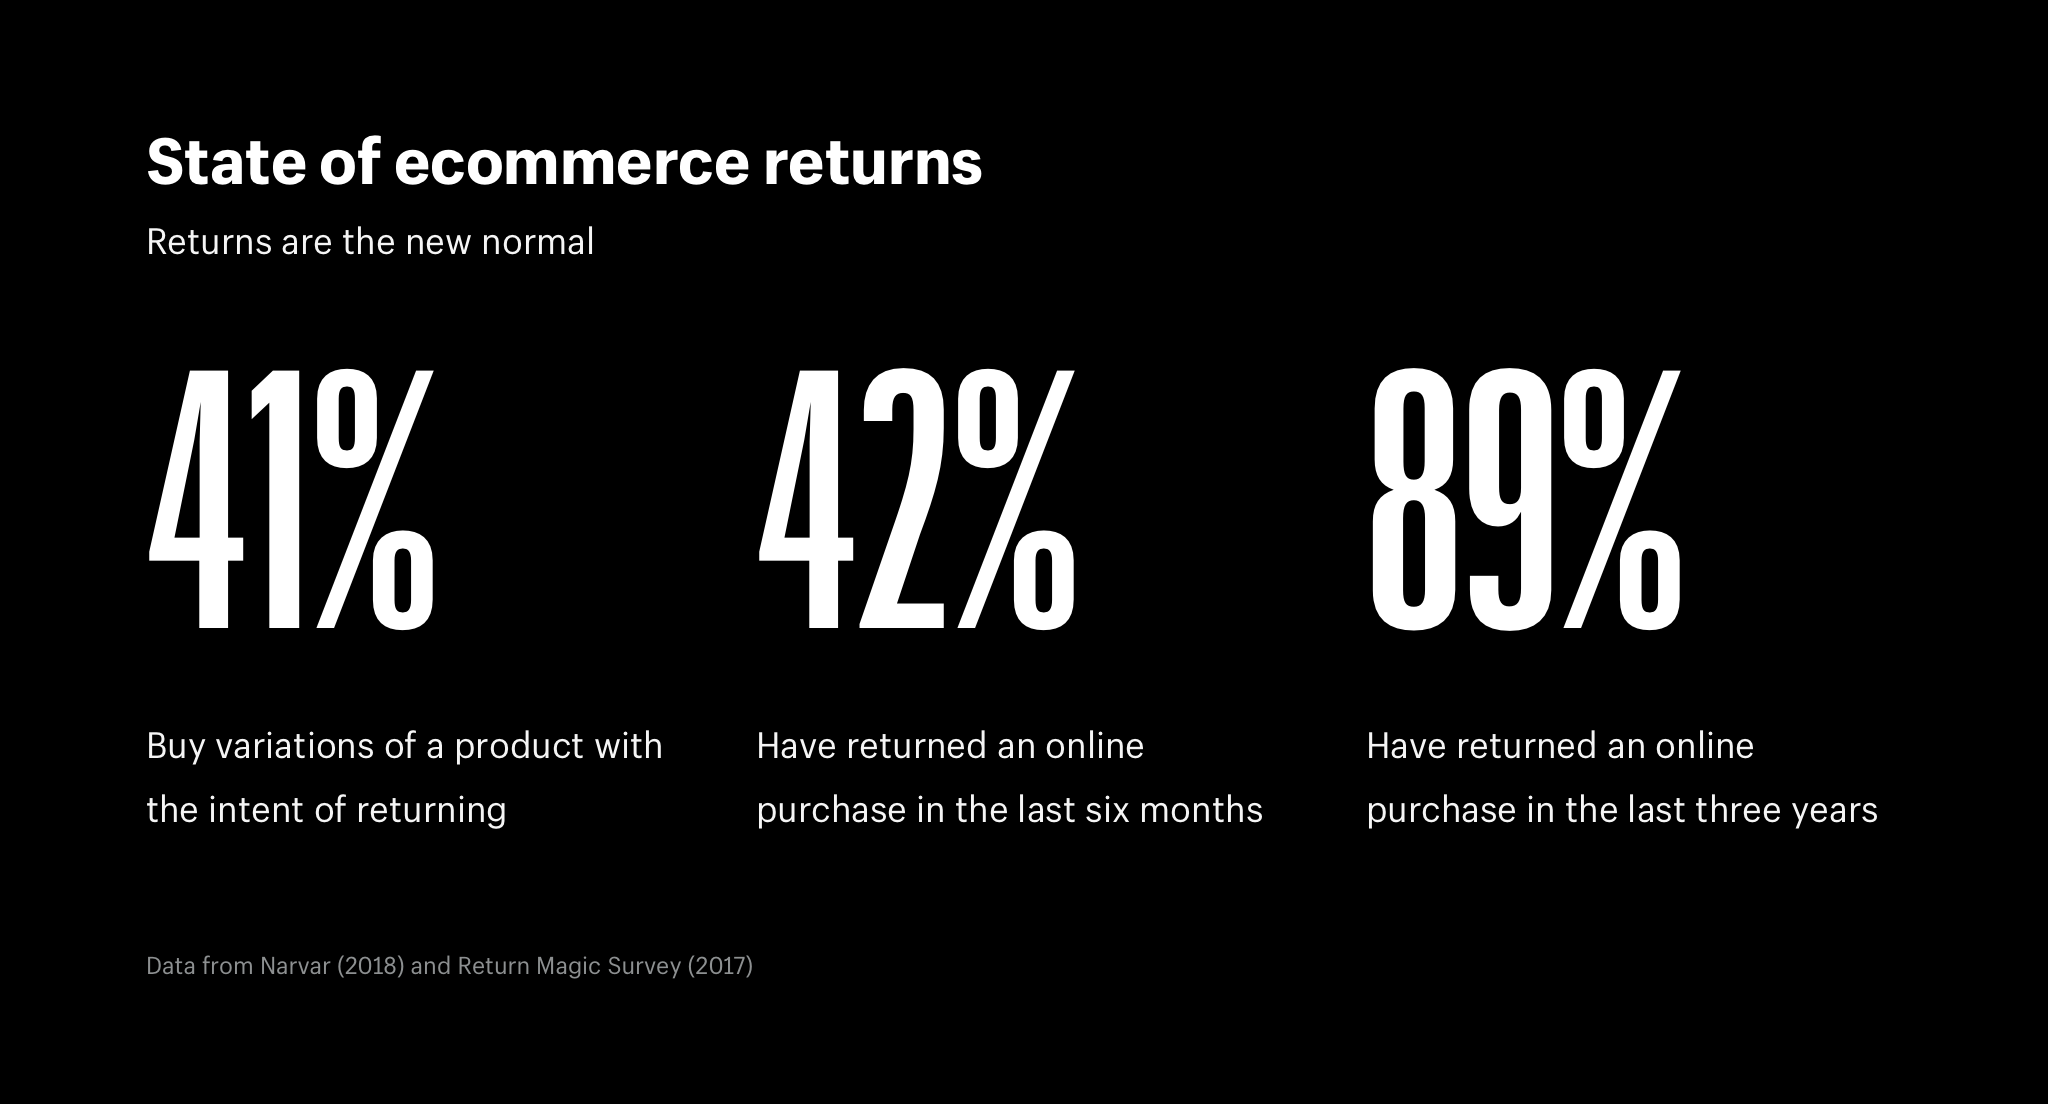 State of ecommerce returns